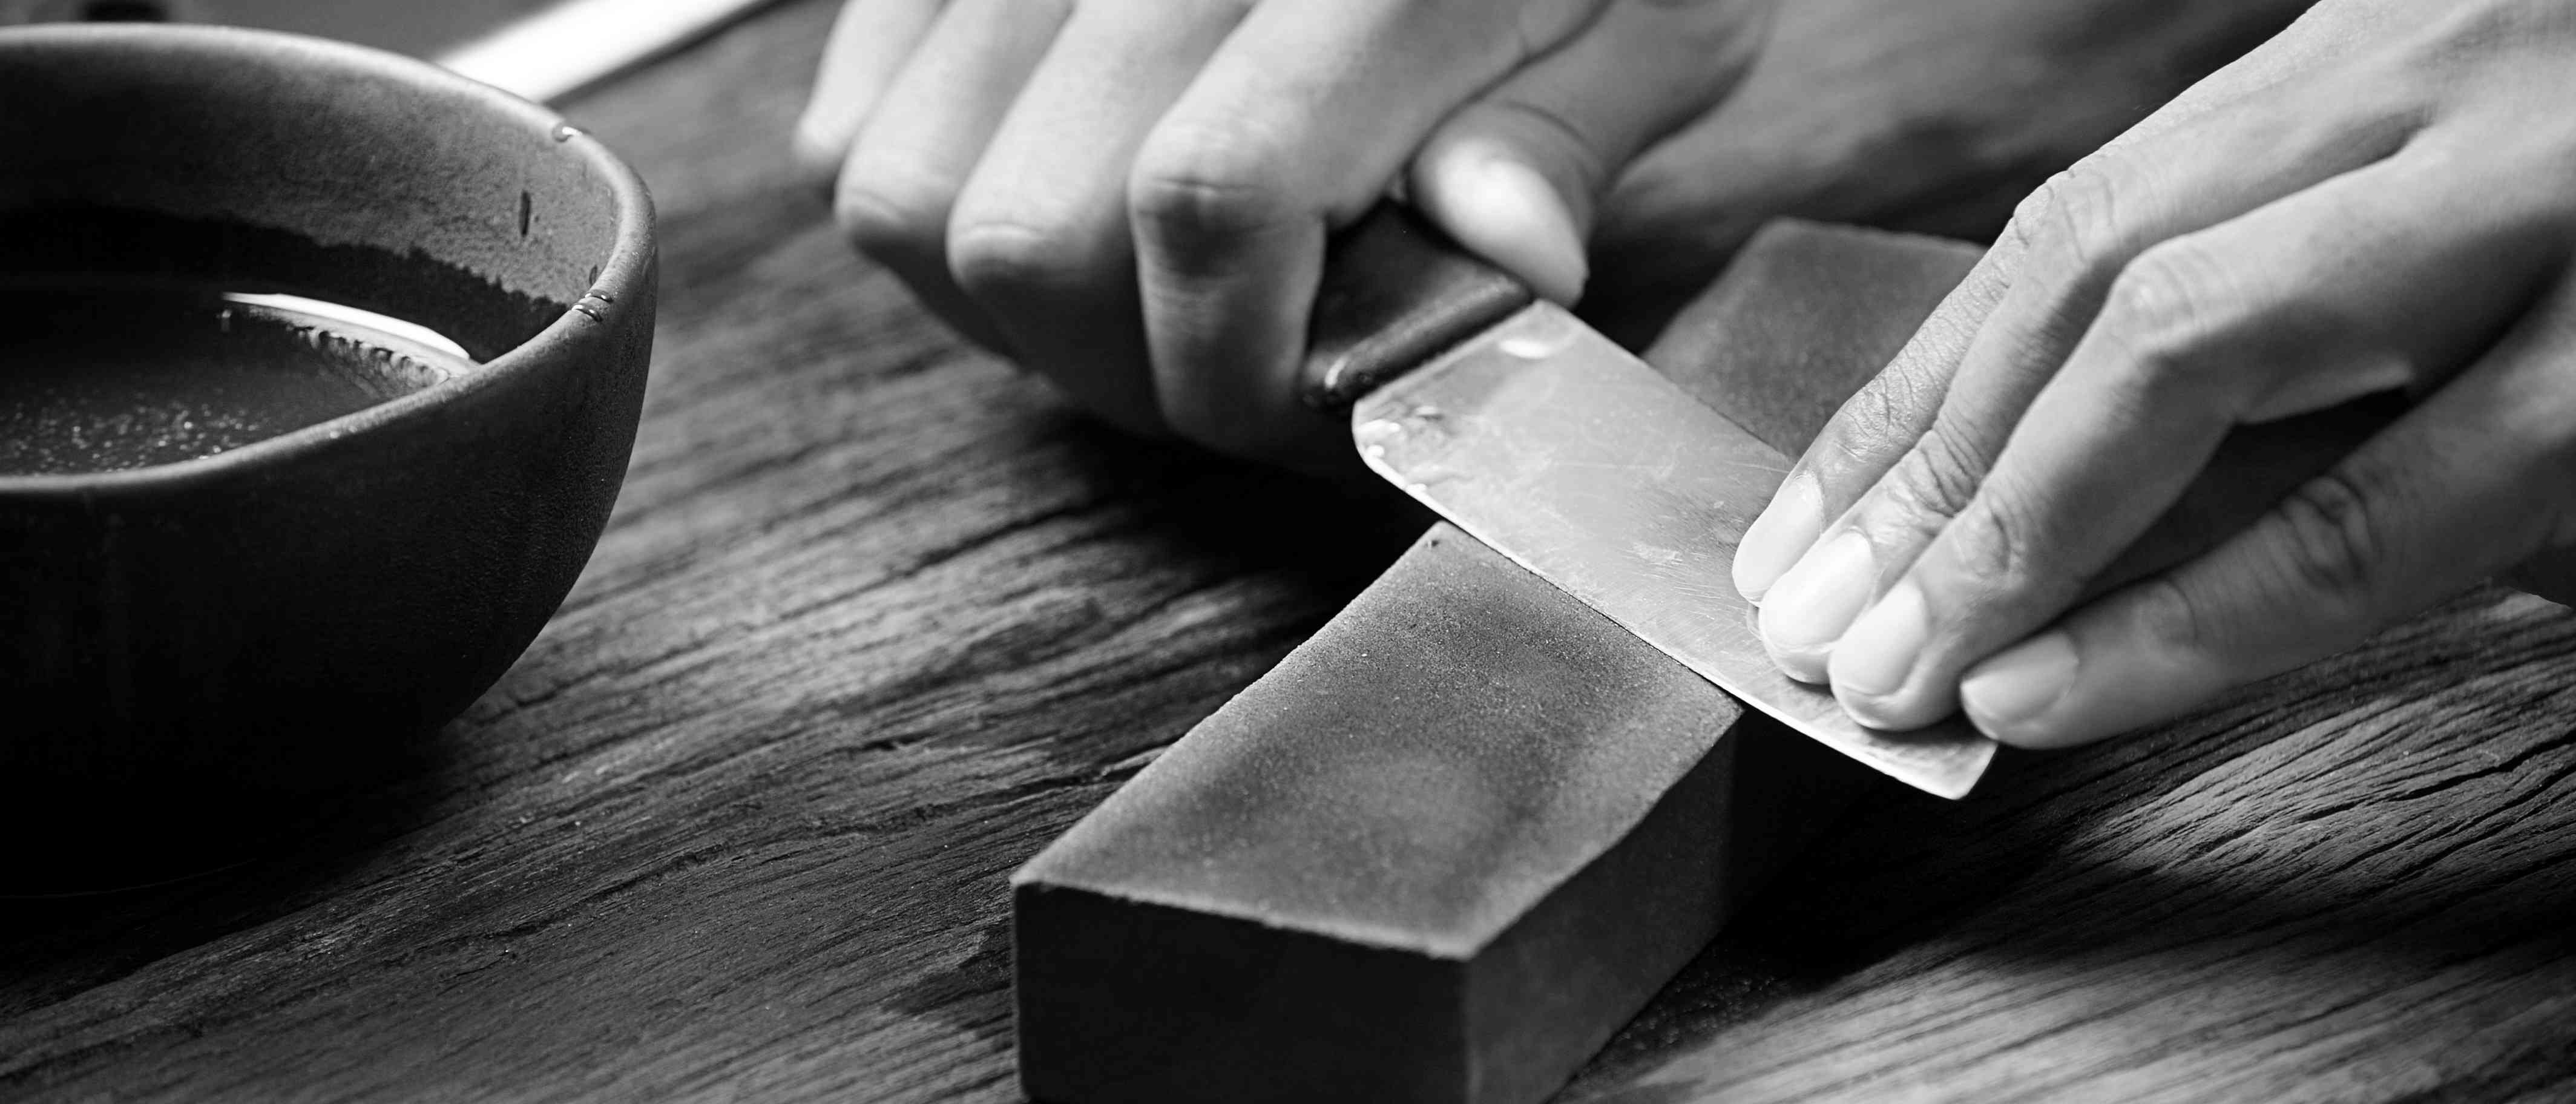 sharpening the Hunting knife with whetstone